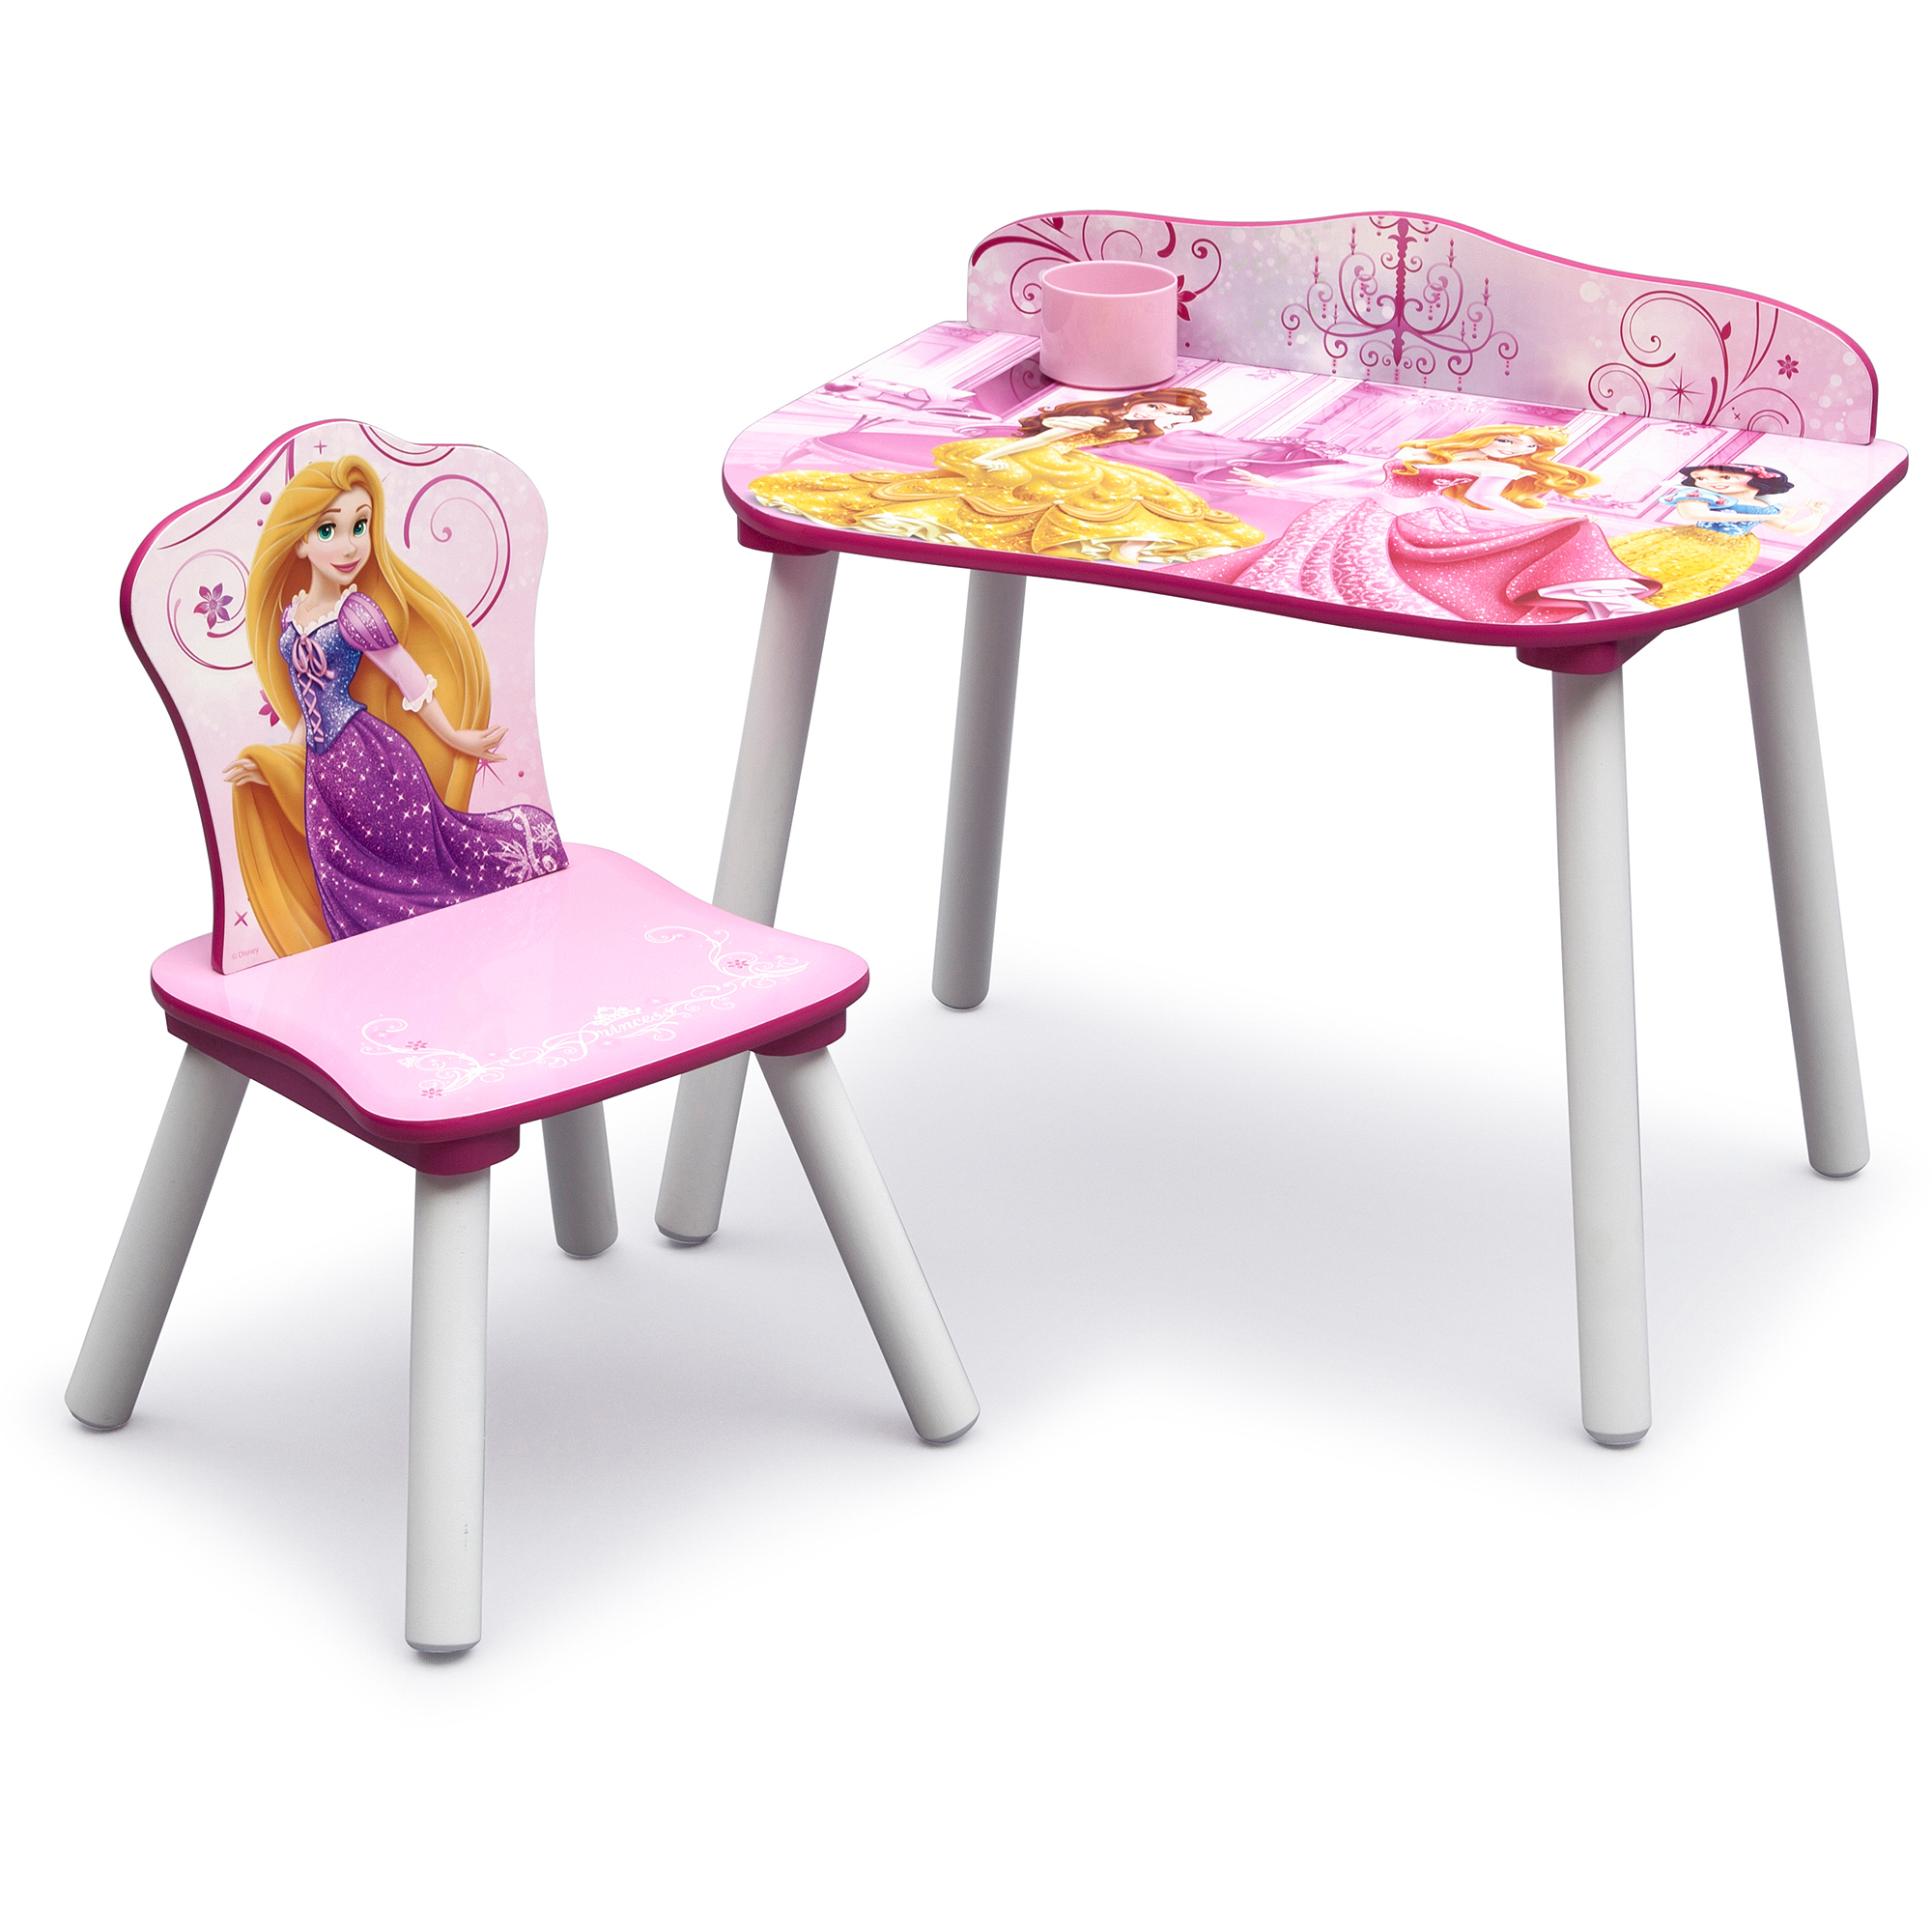 Disney Princess Desk and Chair Set Walmart